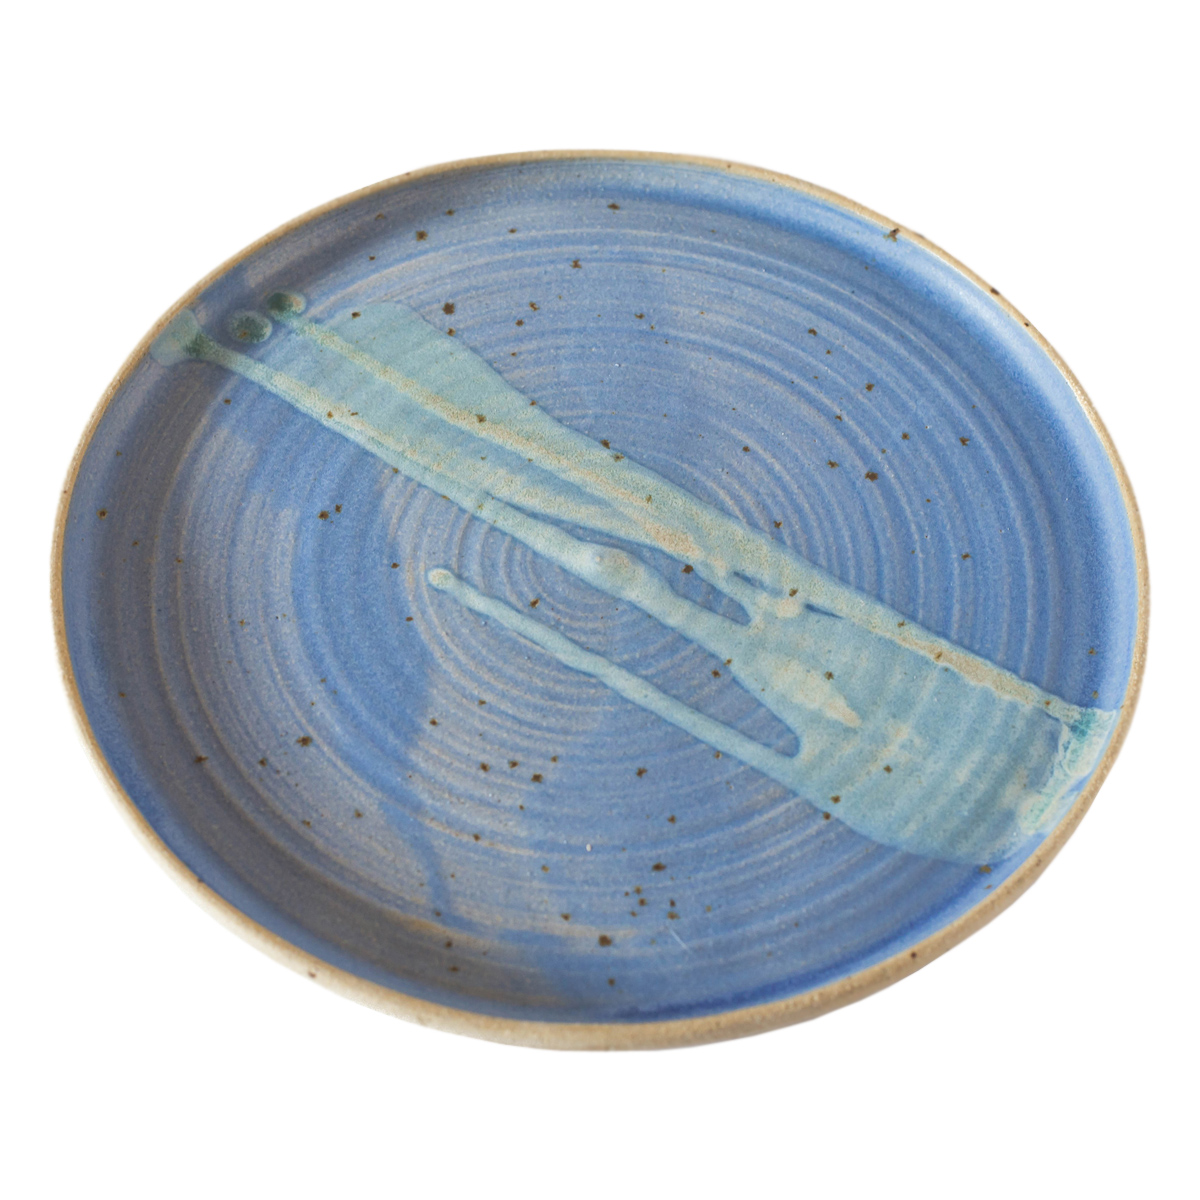 libby-ballard-speckled-dinner-plate-ceramic